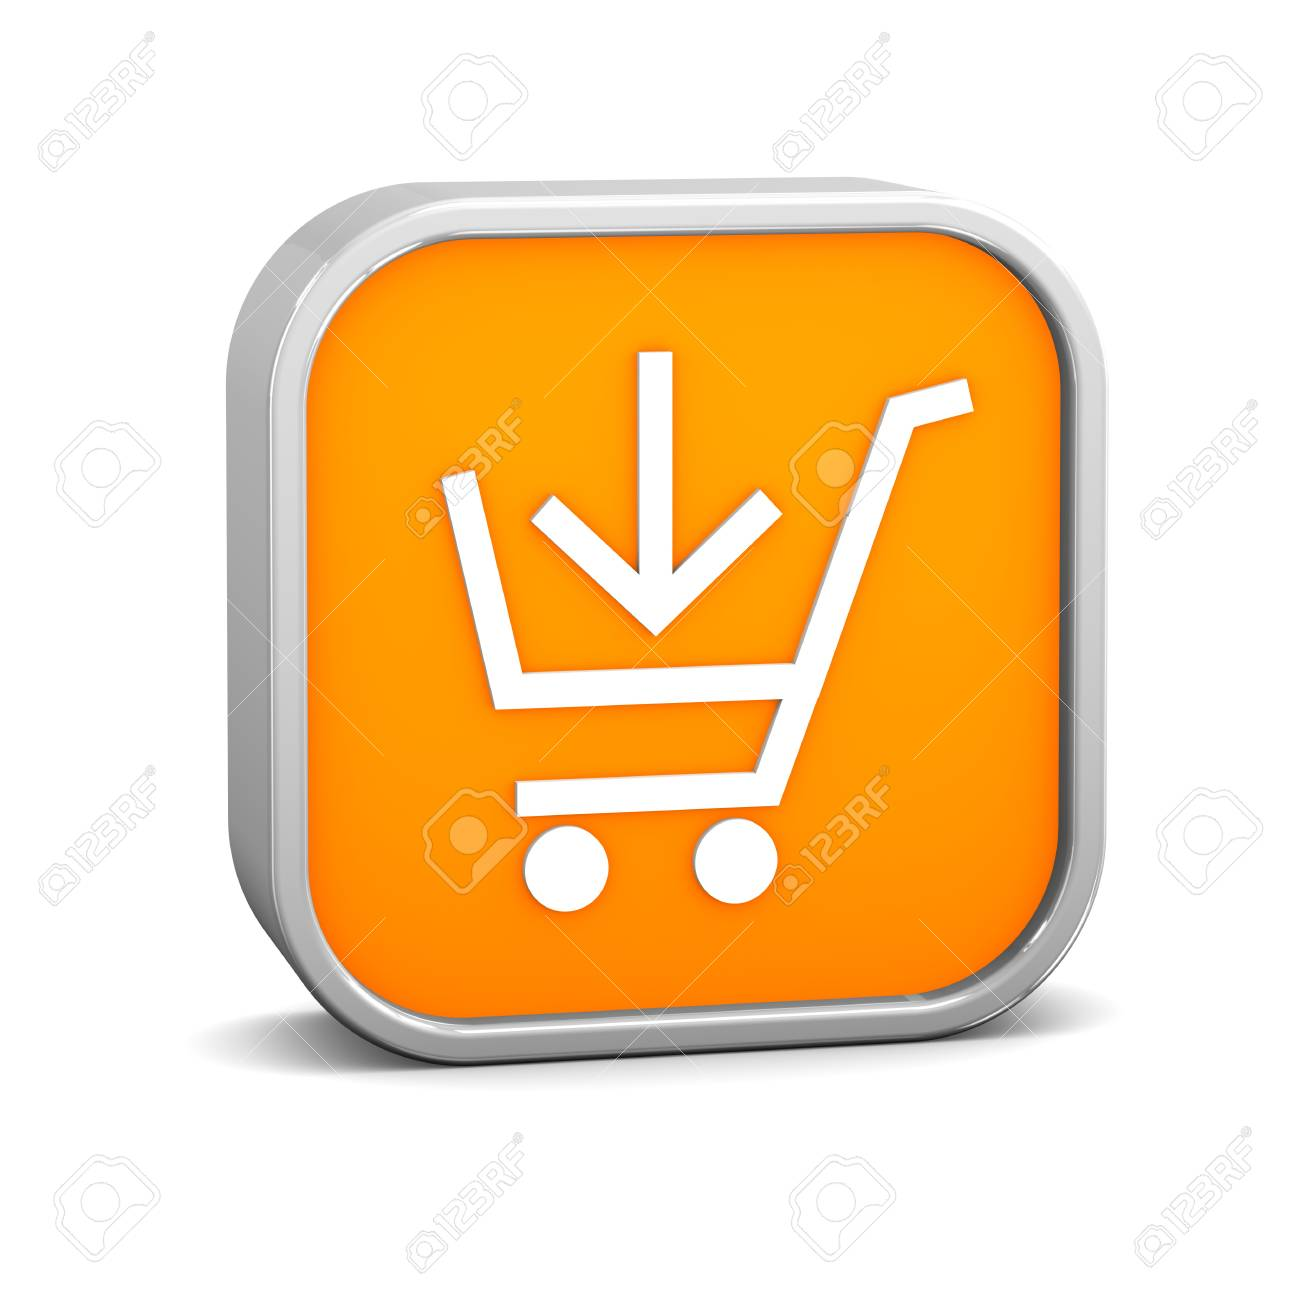 Orange add to cart sign on a white background. Part of a series. Stock Photo - 6919279